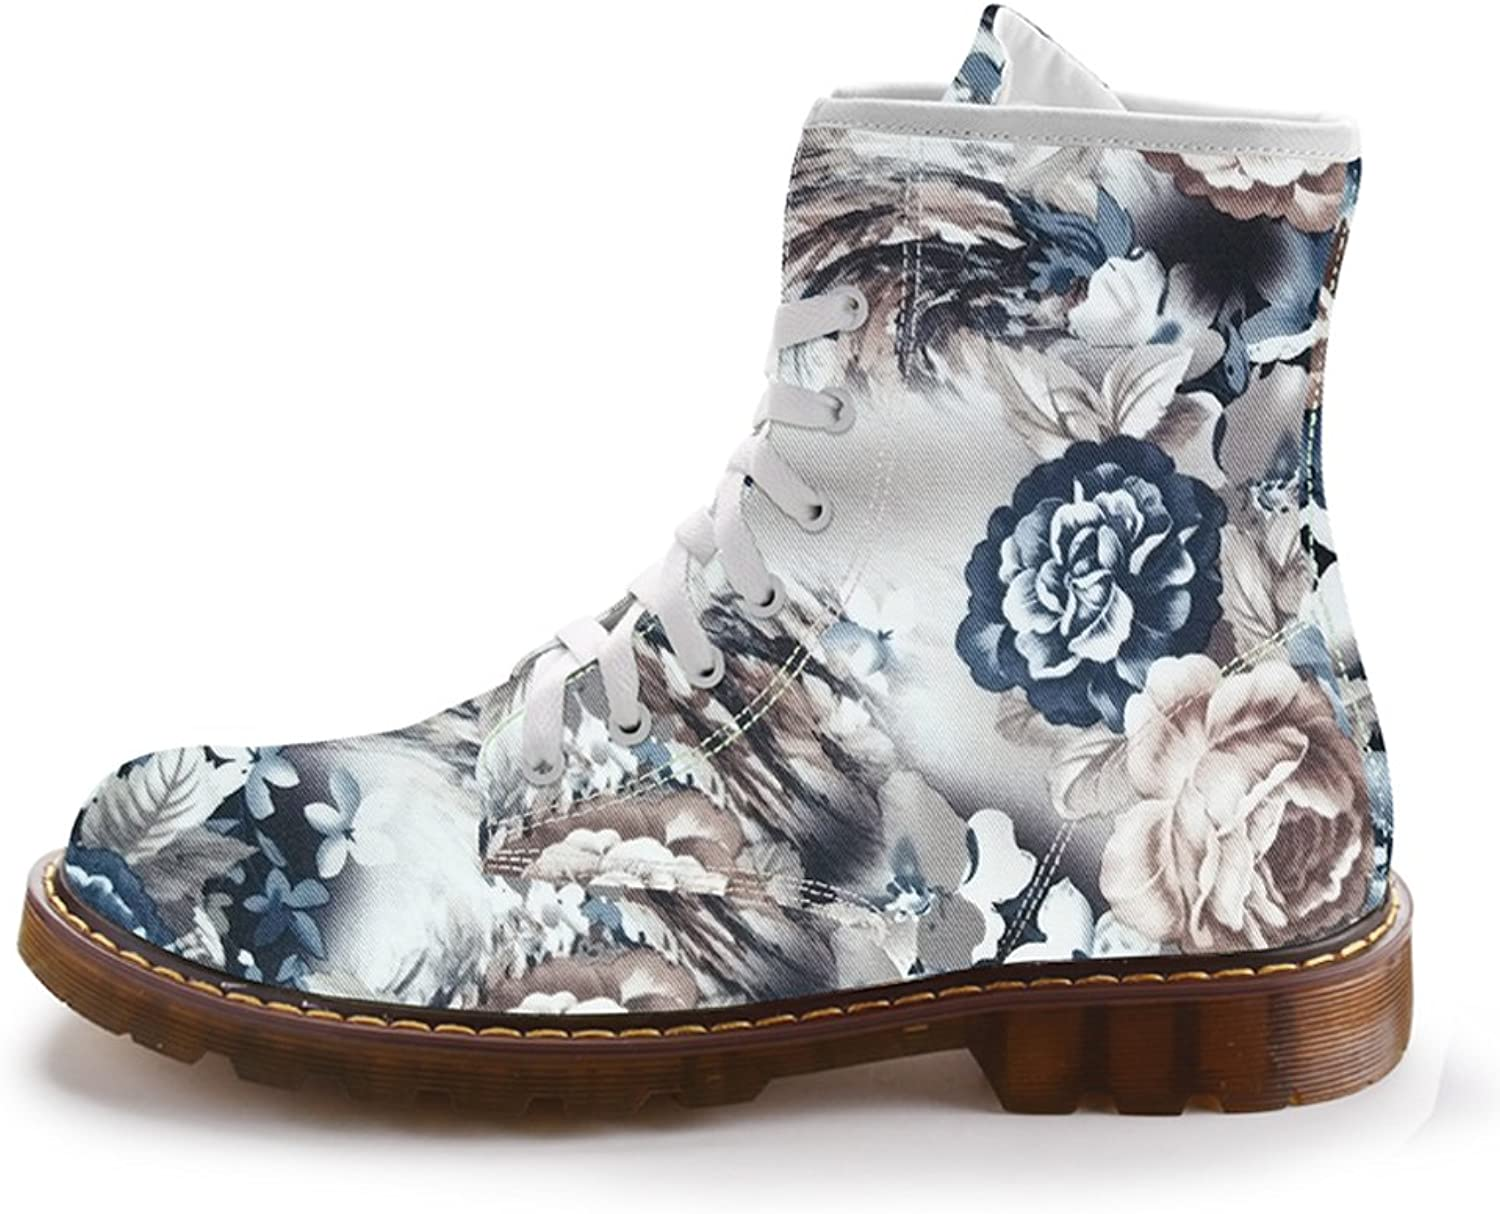 FIRST DANCE Autumn Winter Women Martins shoes Fashion Footwear for Ladies Mid-Calf Boots Flower Printed Cute shoes